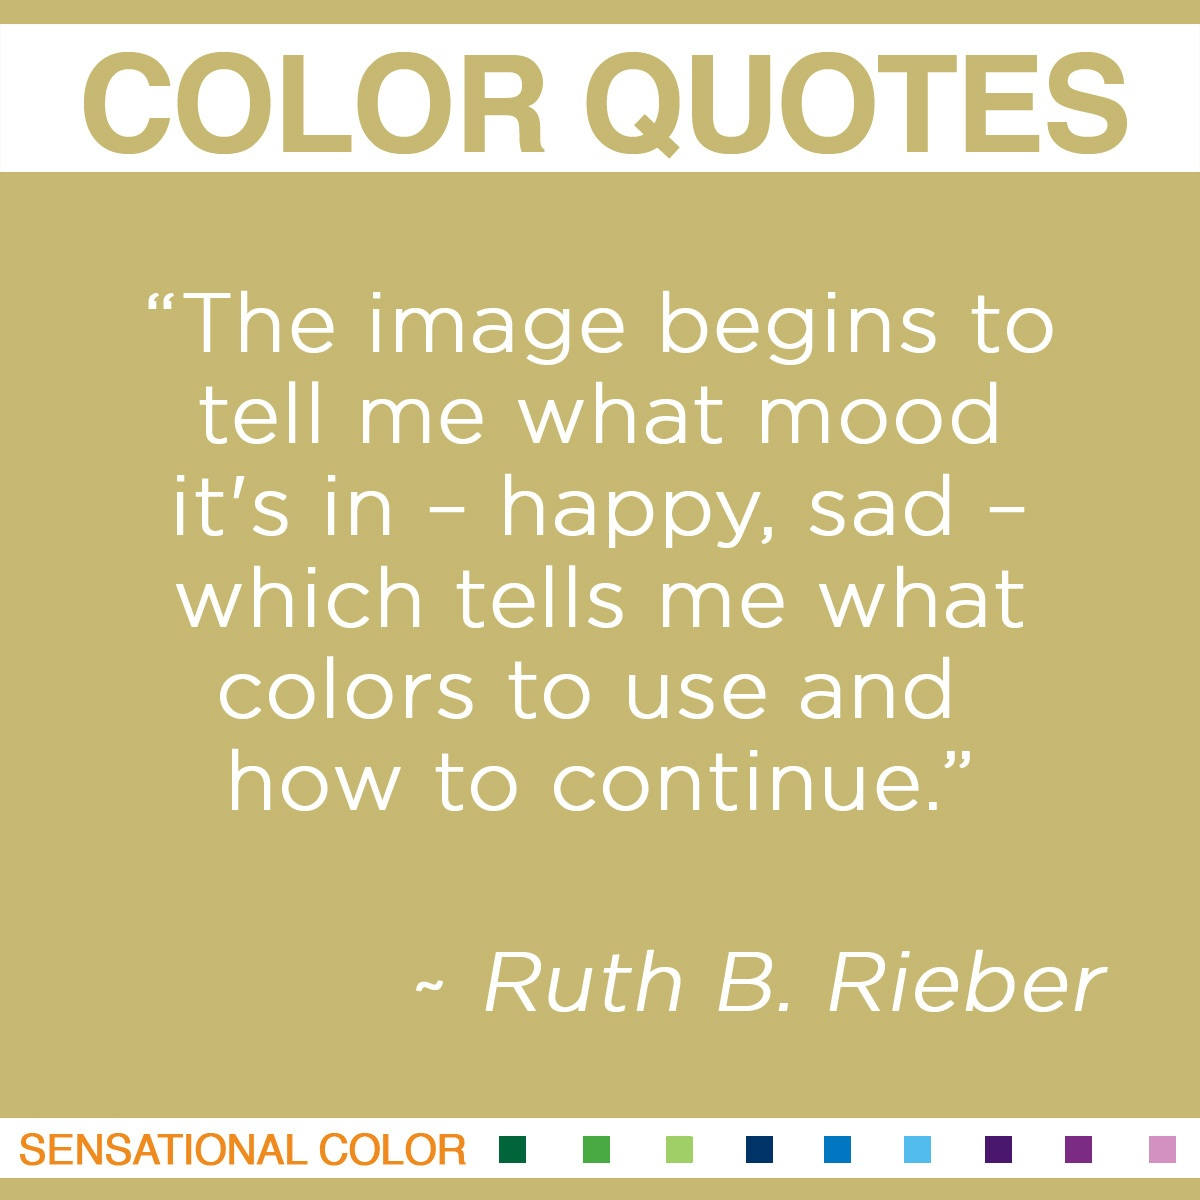 """The image begins to tell me what mood it's in – happy, sad – which tells me what colors to use and how to continue."" - Ruth B. Rieber"